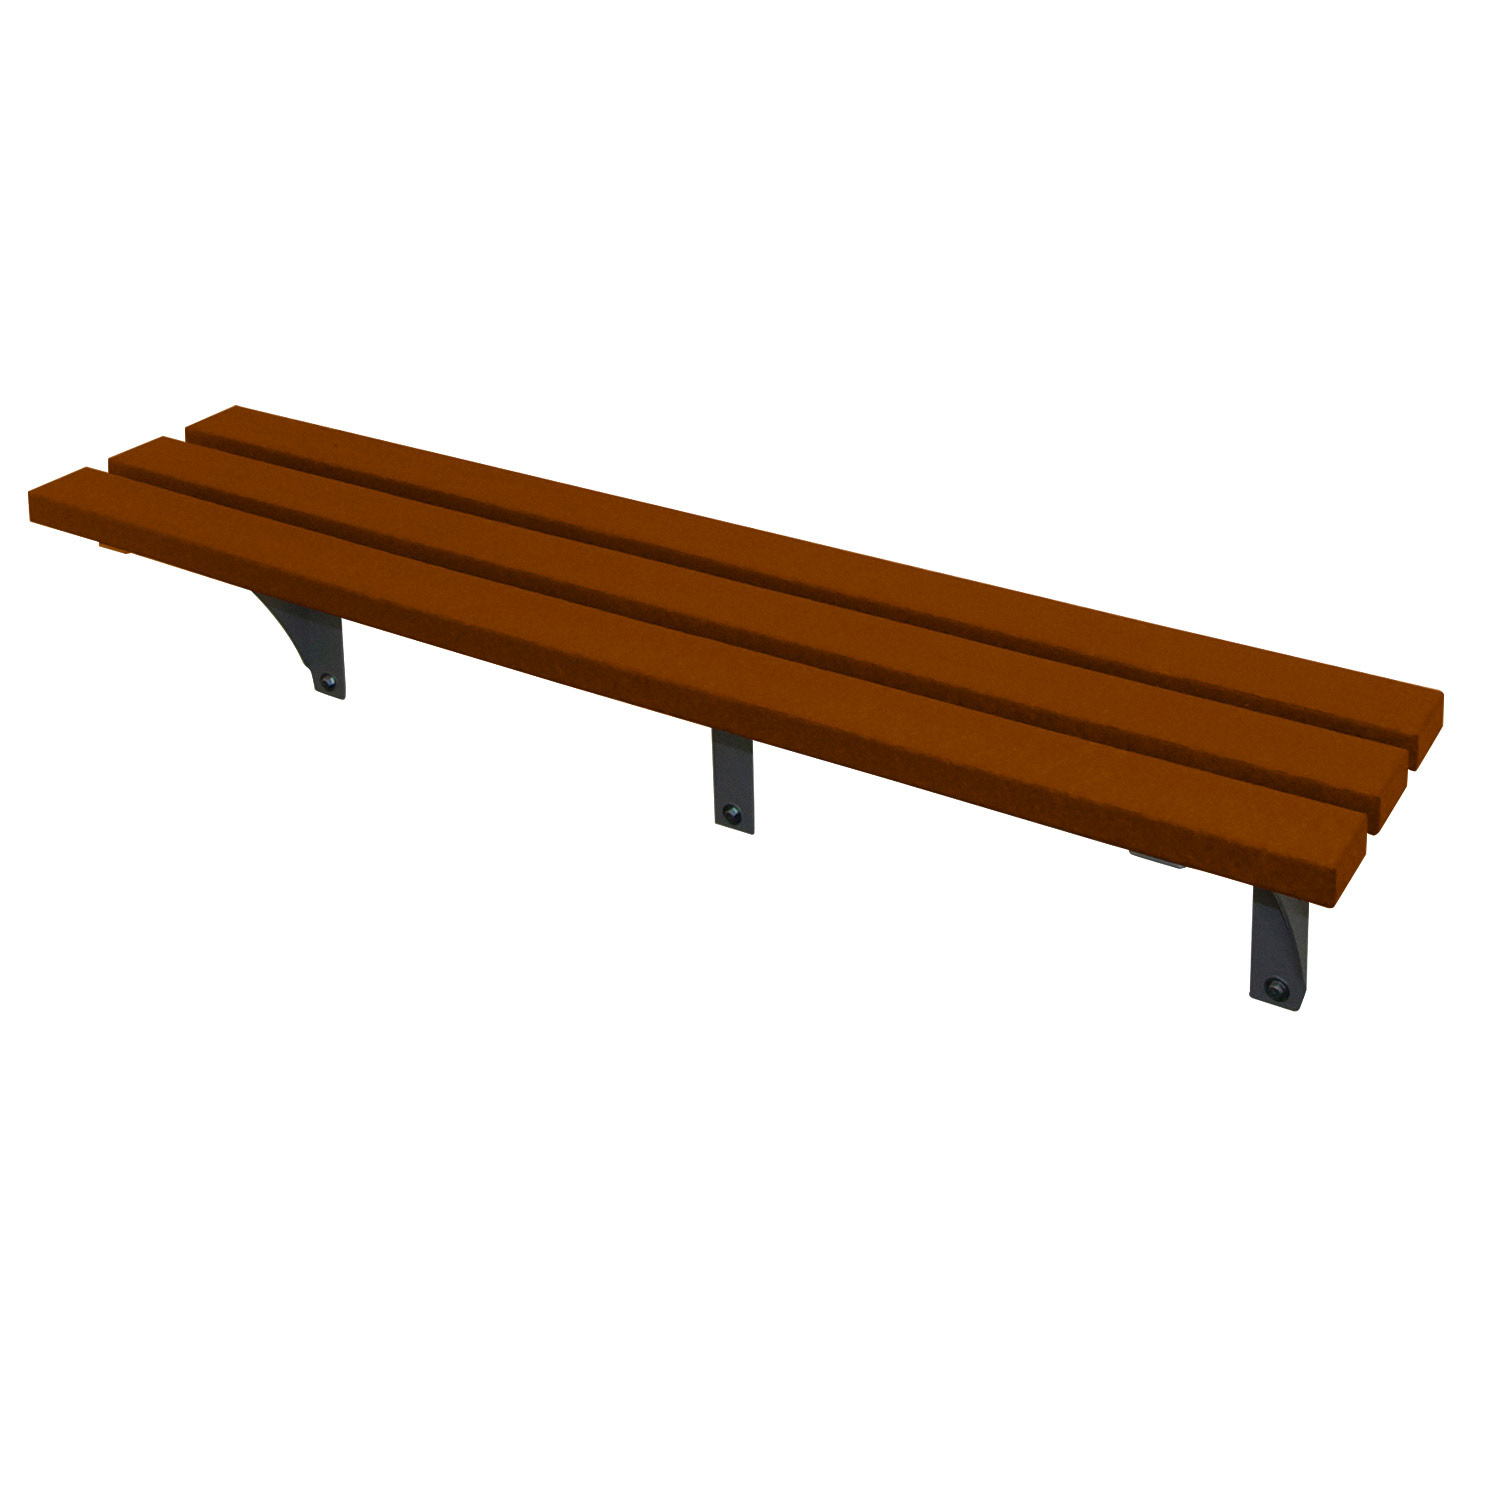 636638082630243059_brown-bench-web.jpg